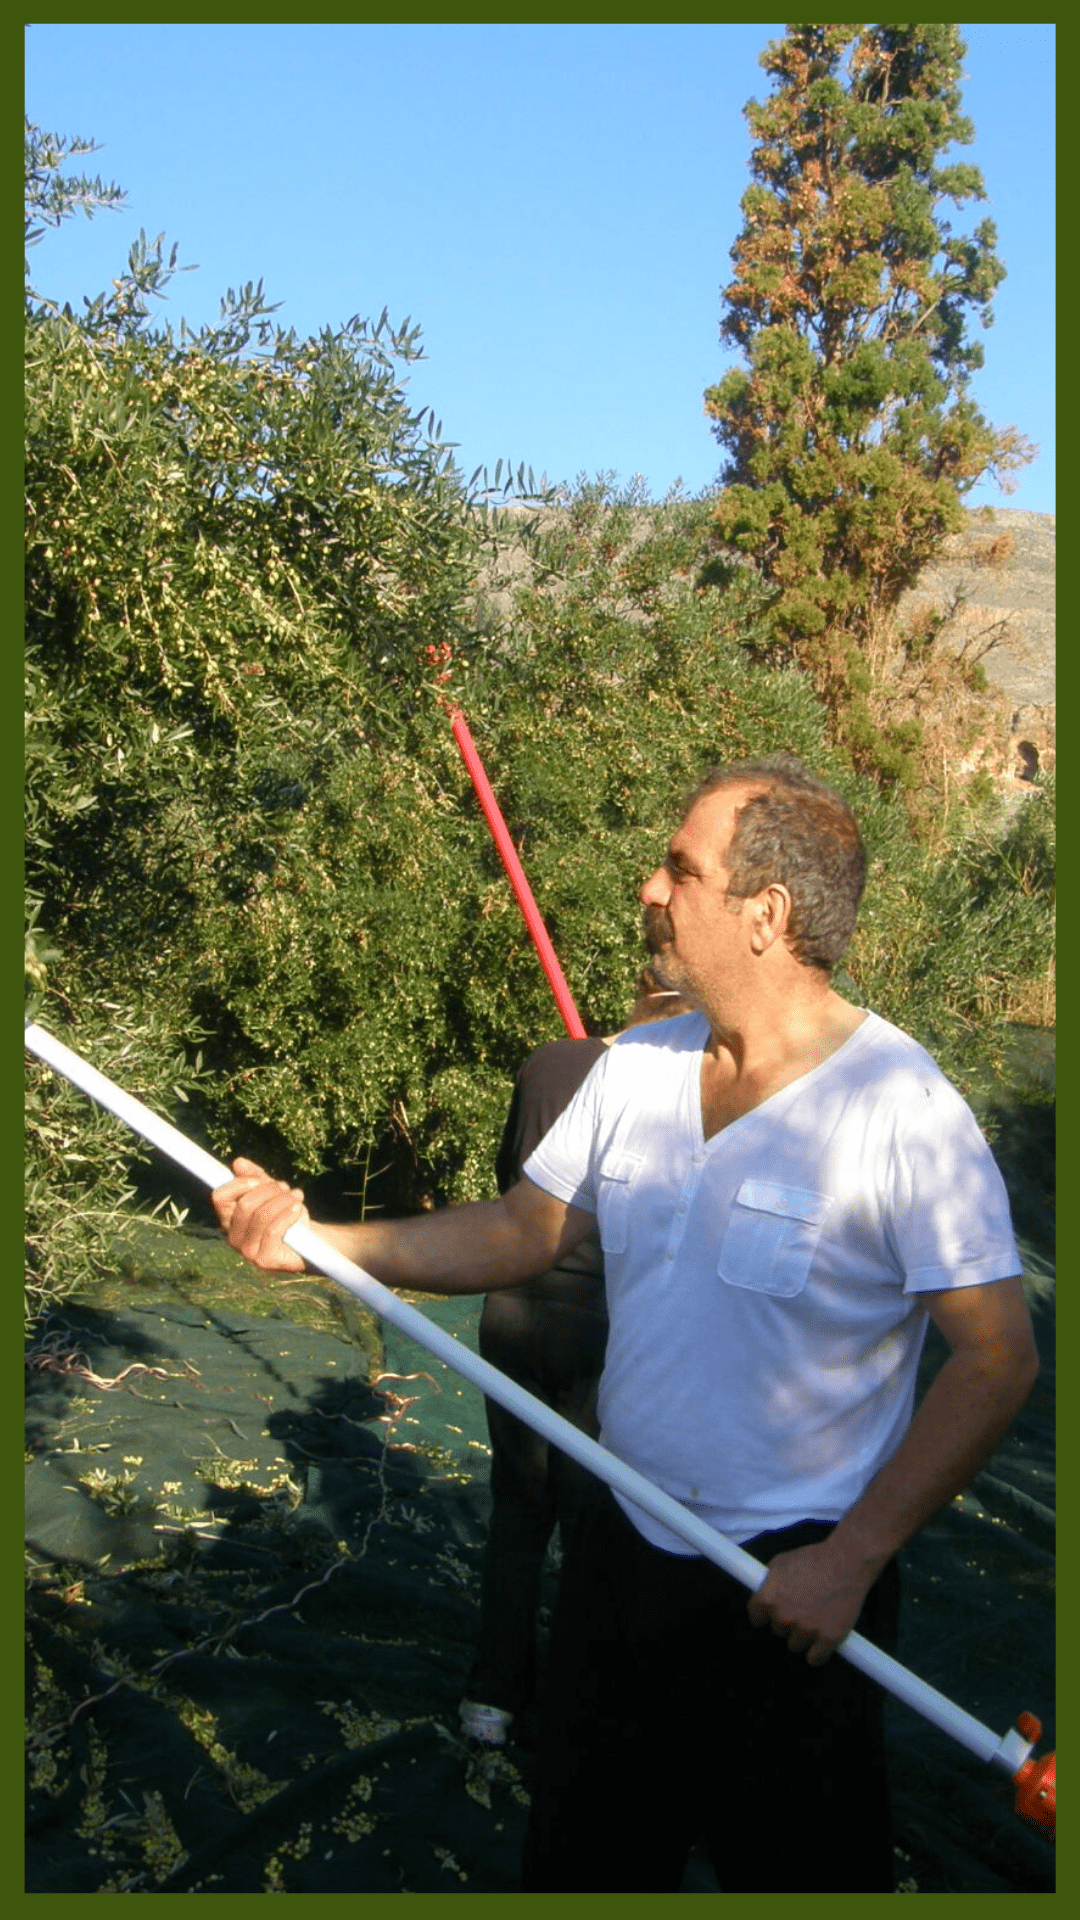 Olive Oil Harvest in Crete